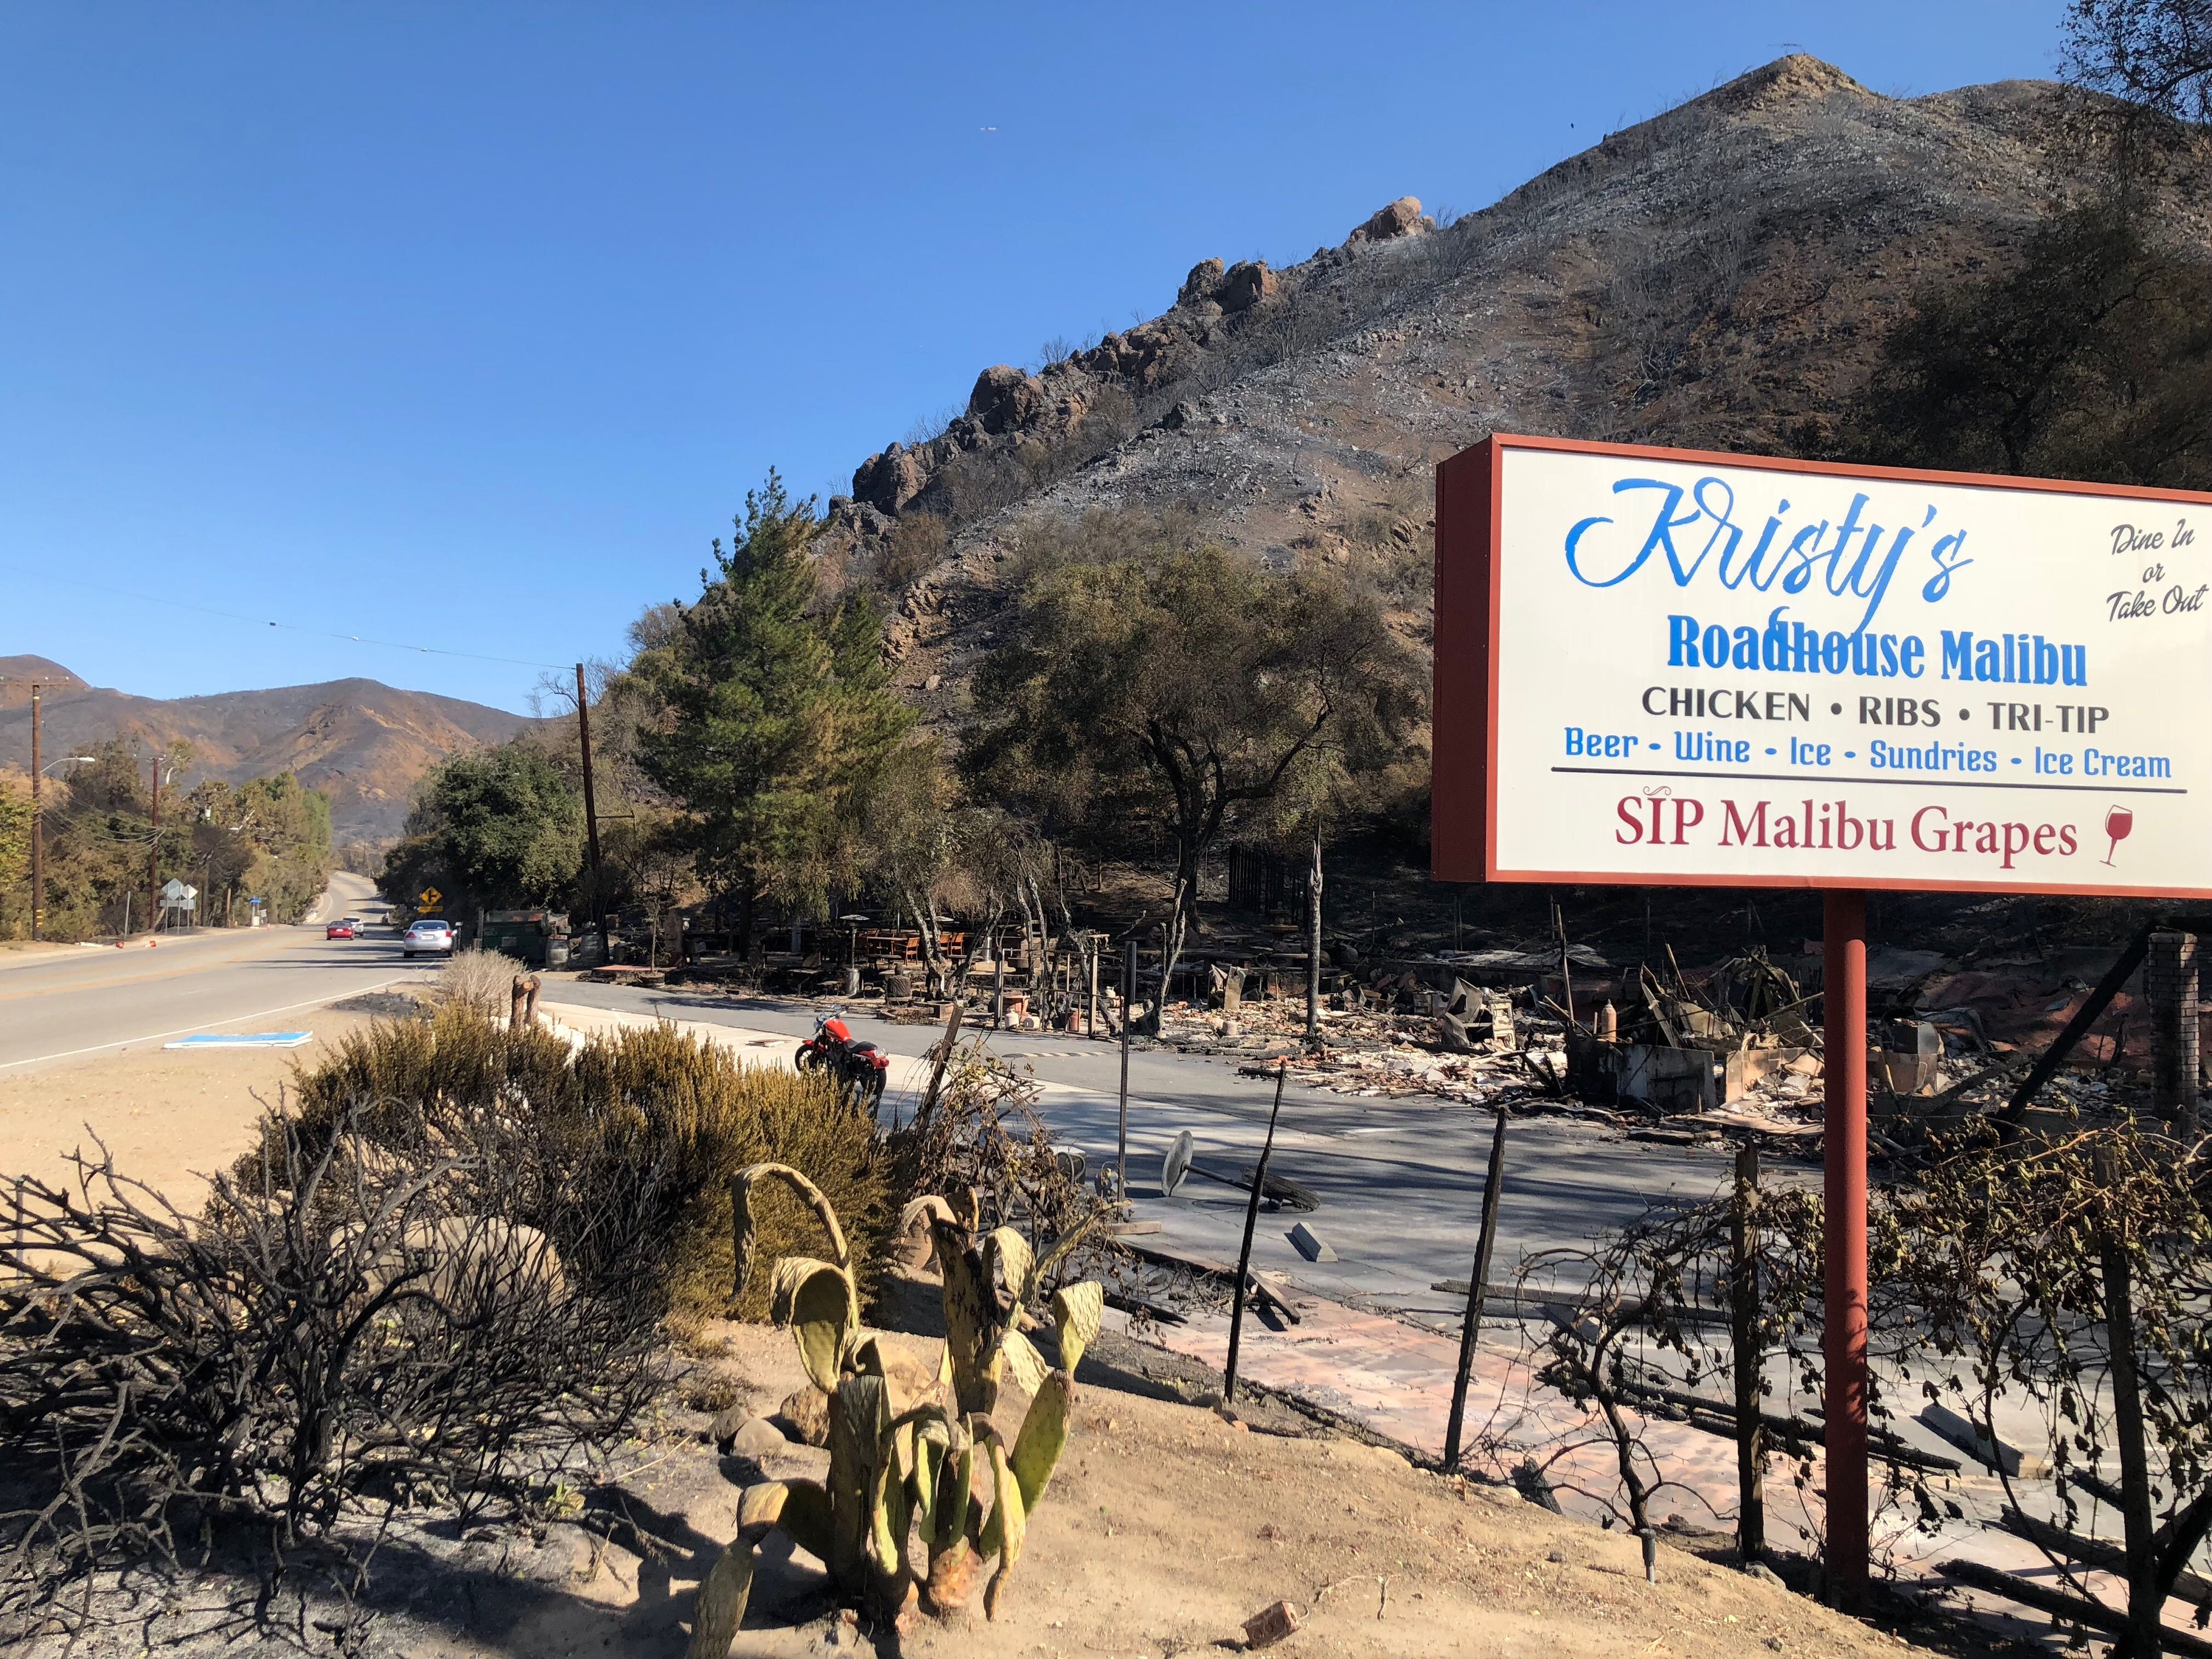 Evacuations remain for Malibu, 2 found dead as Woolsey Fire